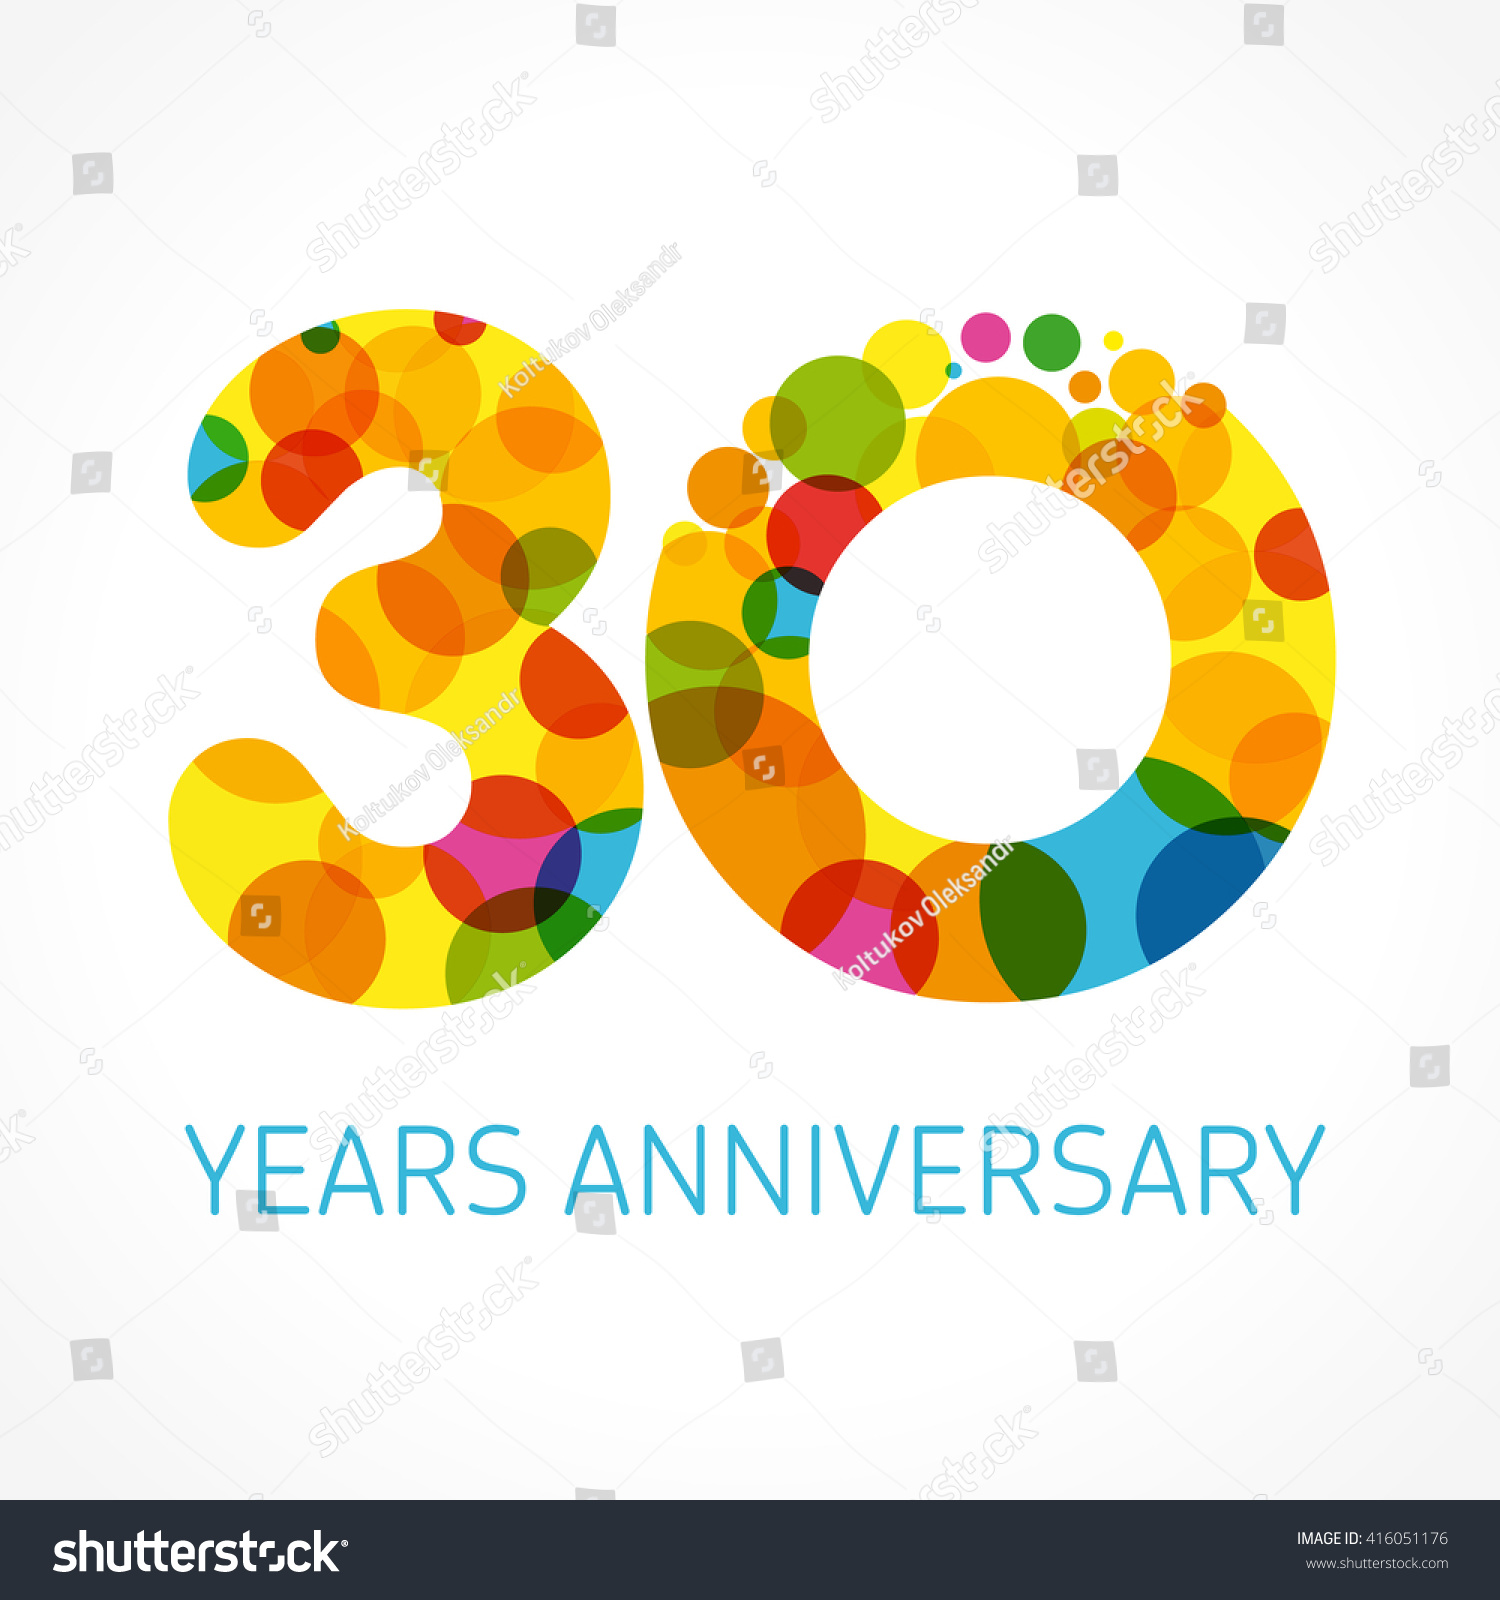 Template logo 30th anniversary circle form stock vector 416051176 shutterstock - Color of th anniversary ...